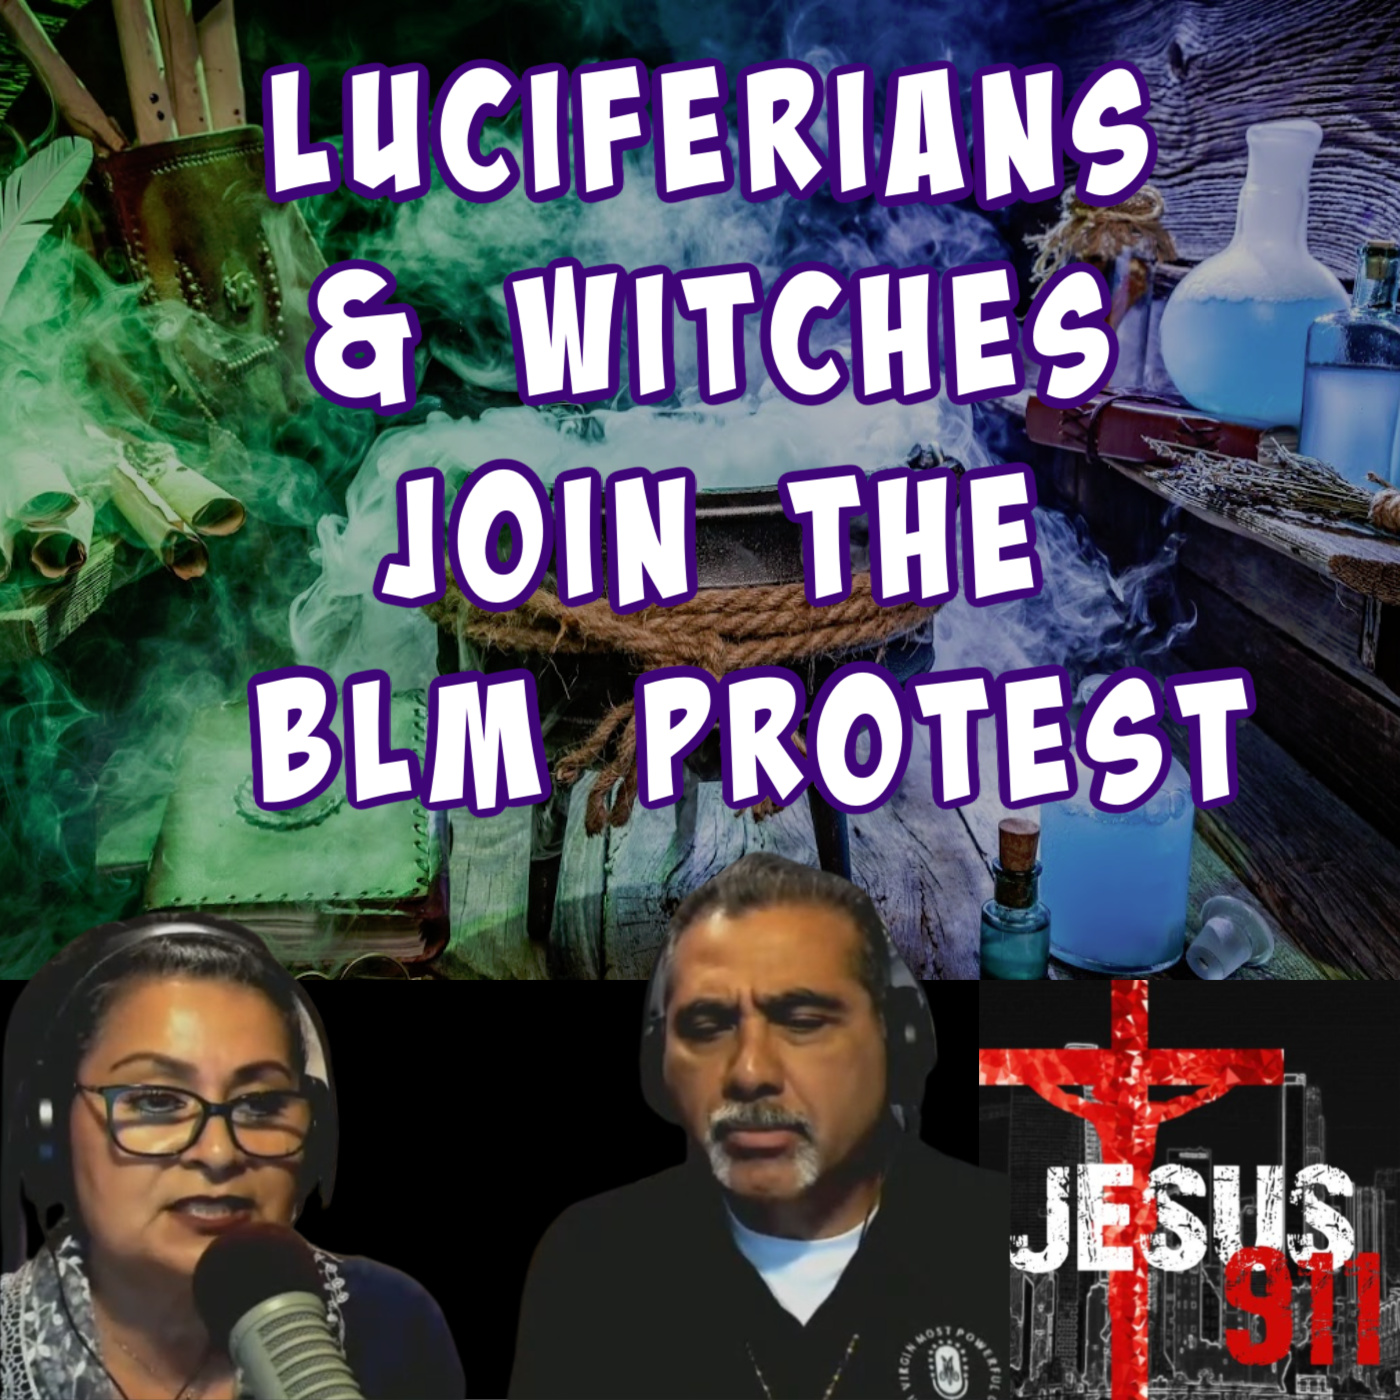 19 Jun 2020 – Luciferians & Witches join the BLM Protest